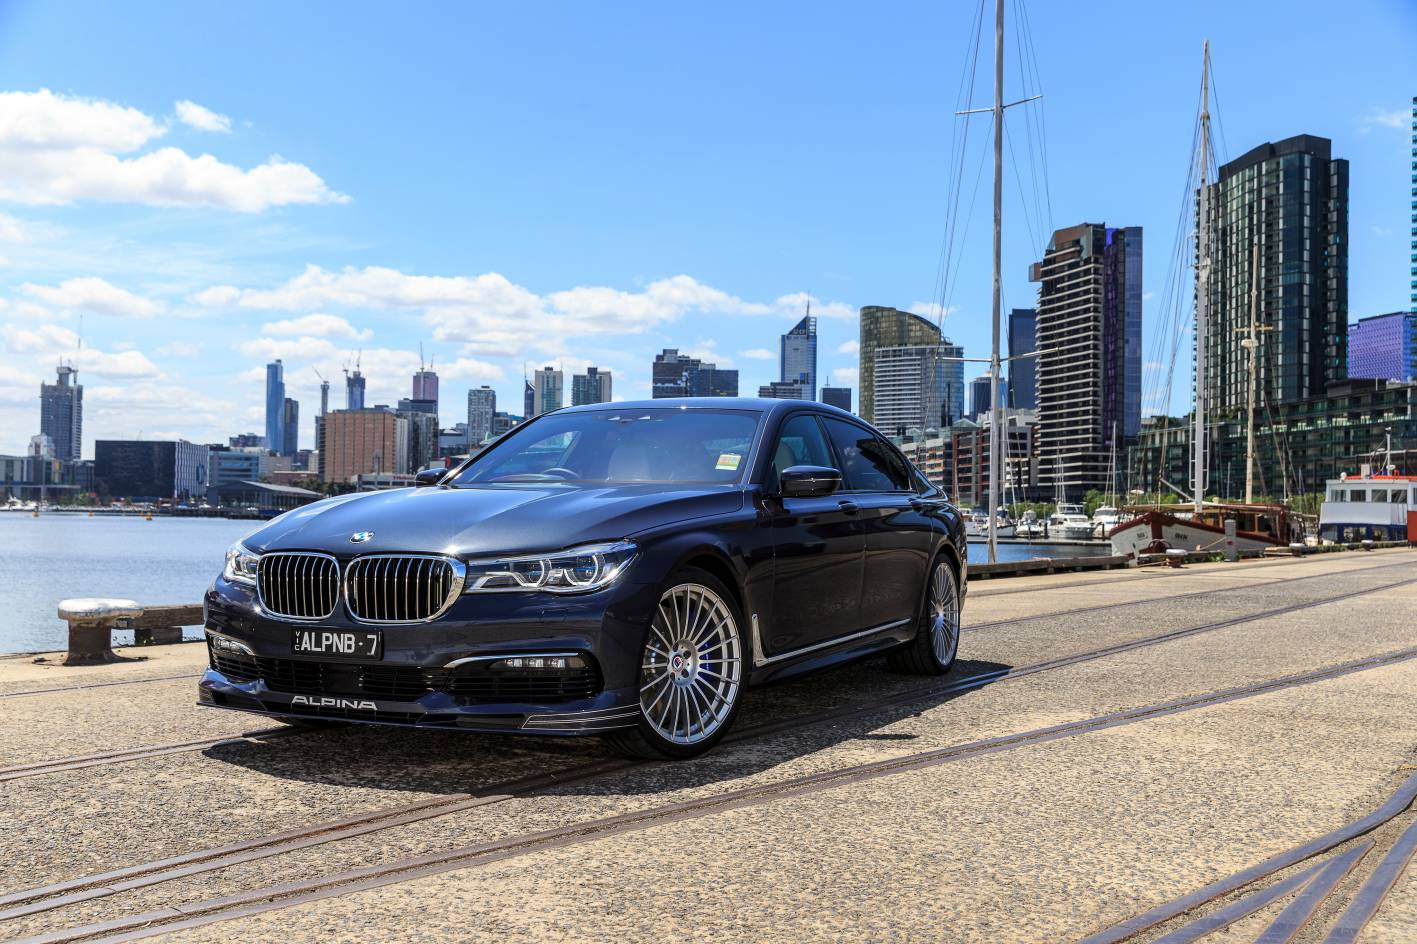 Low Volume German Manufacturer ALPINA Has Brought In A New Flagship To Join Its Range Of Bespoke BMW Based Vehicles Australia The B7 Bi Turbo